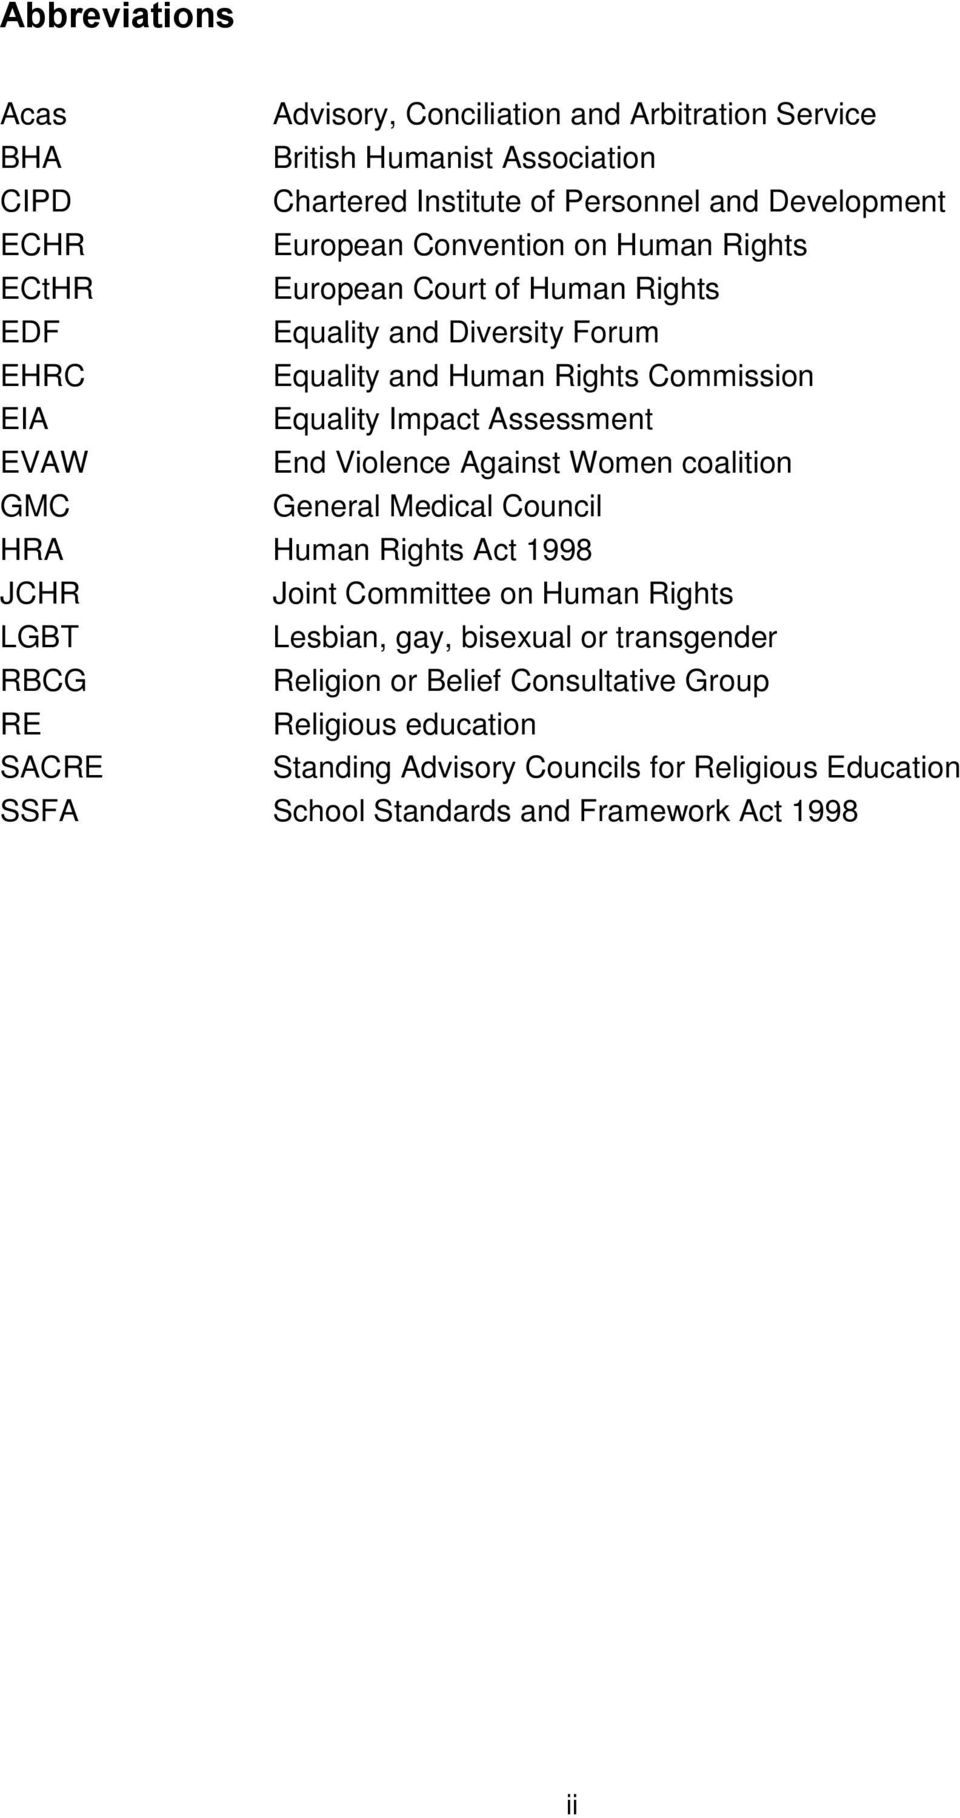 EVAW End Violence Against Women coalition GMC General Medical Council HRA Human Rights Act 1998 JCHR Joint Committee on Human Rights LGBT Lesbian, gay, bisexual or